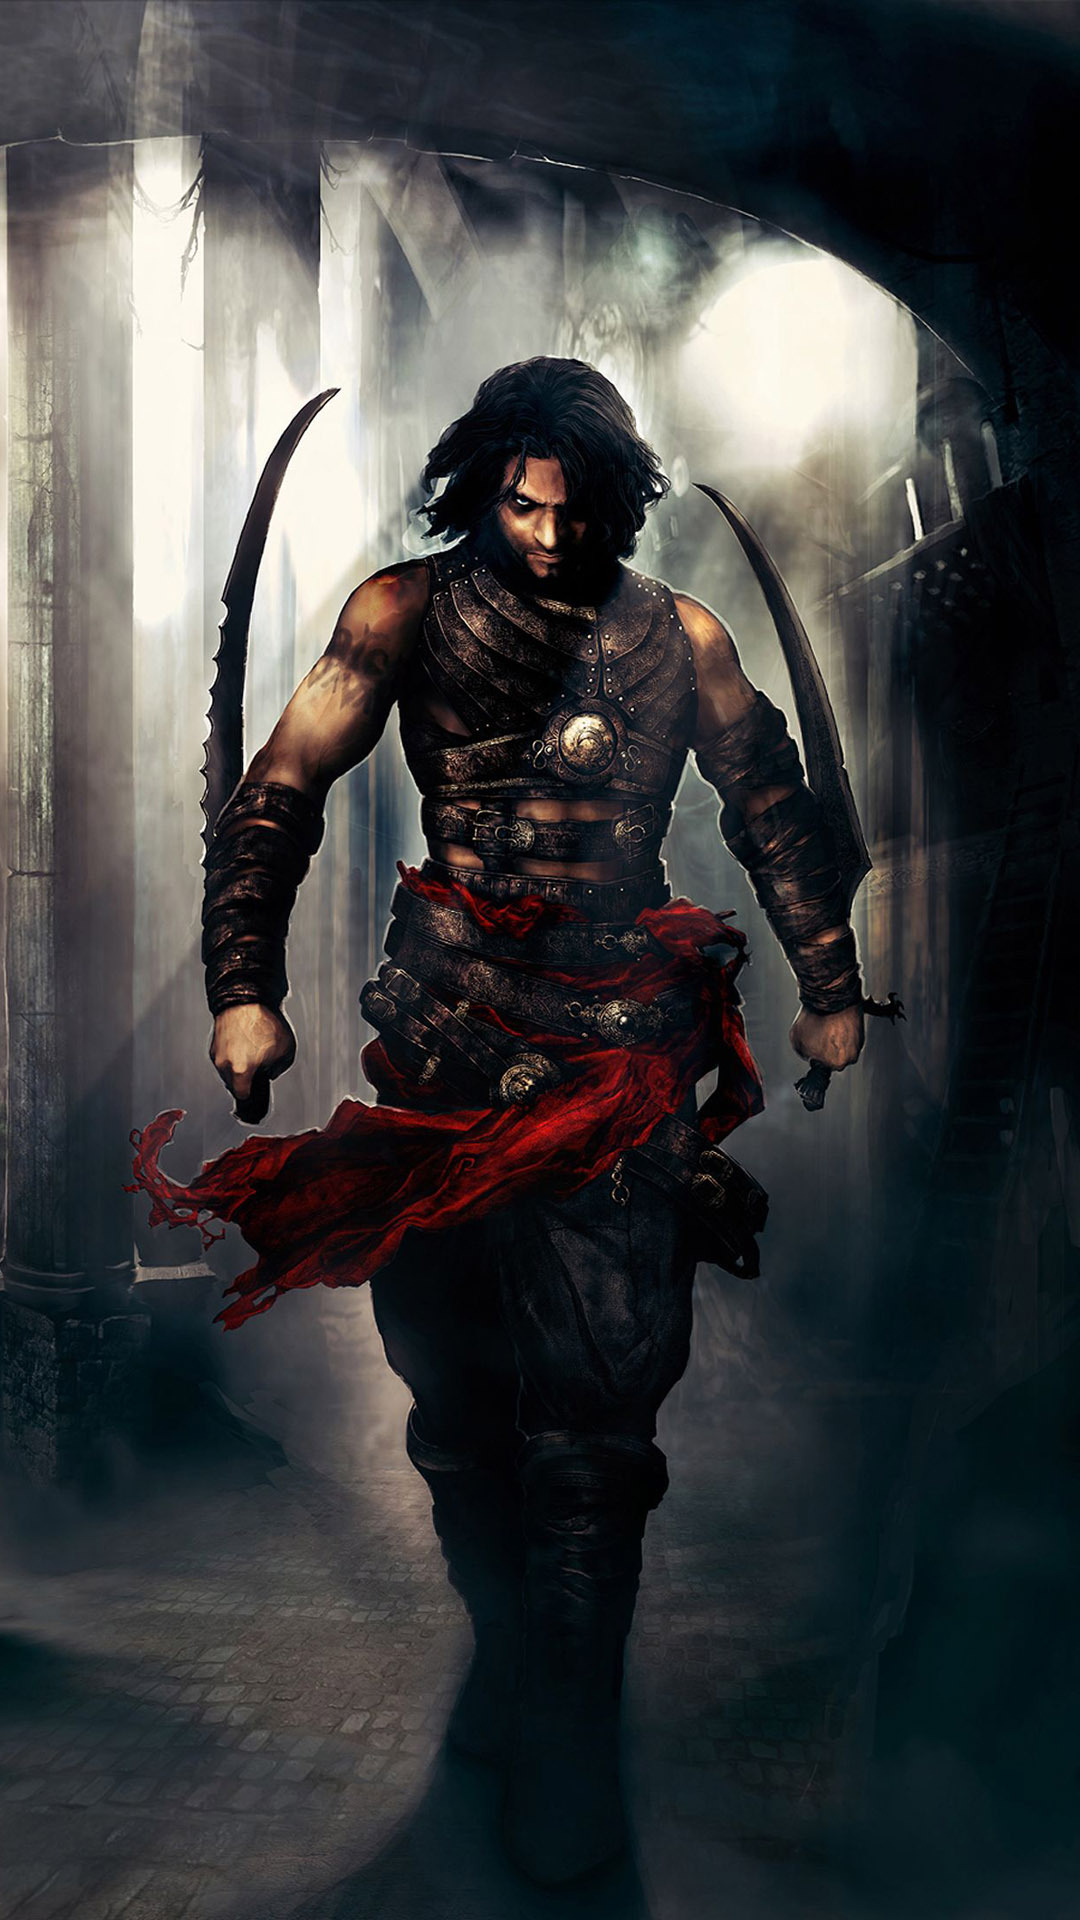 Prince Of Persia Wallpapers - Wallpaper Cave |Prince Of Persia Movie Wallpapers